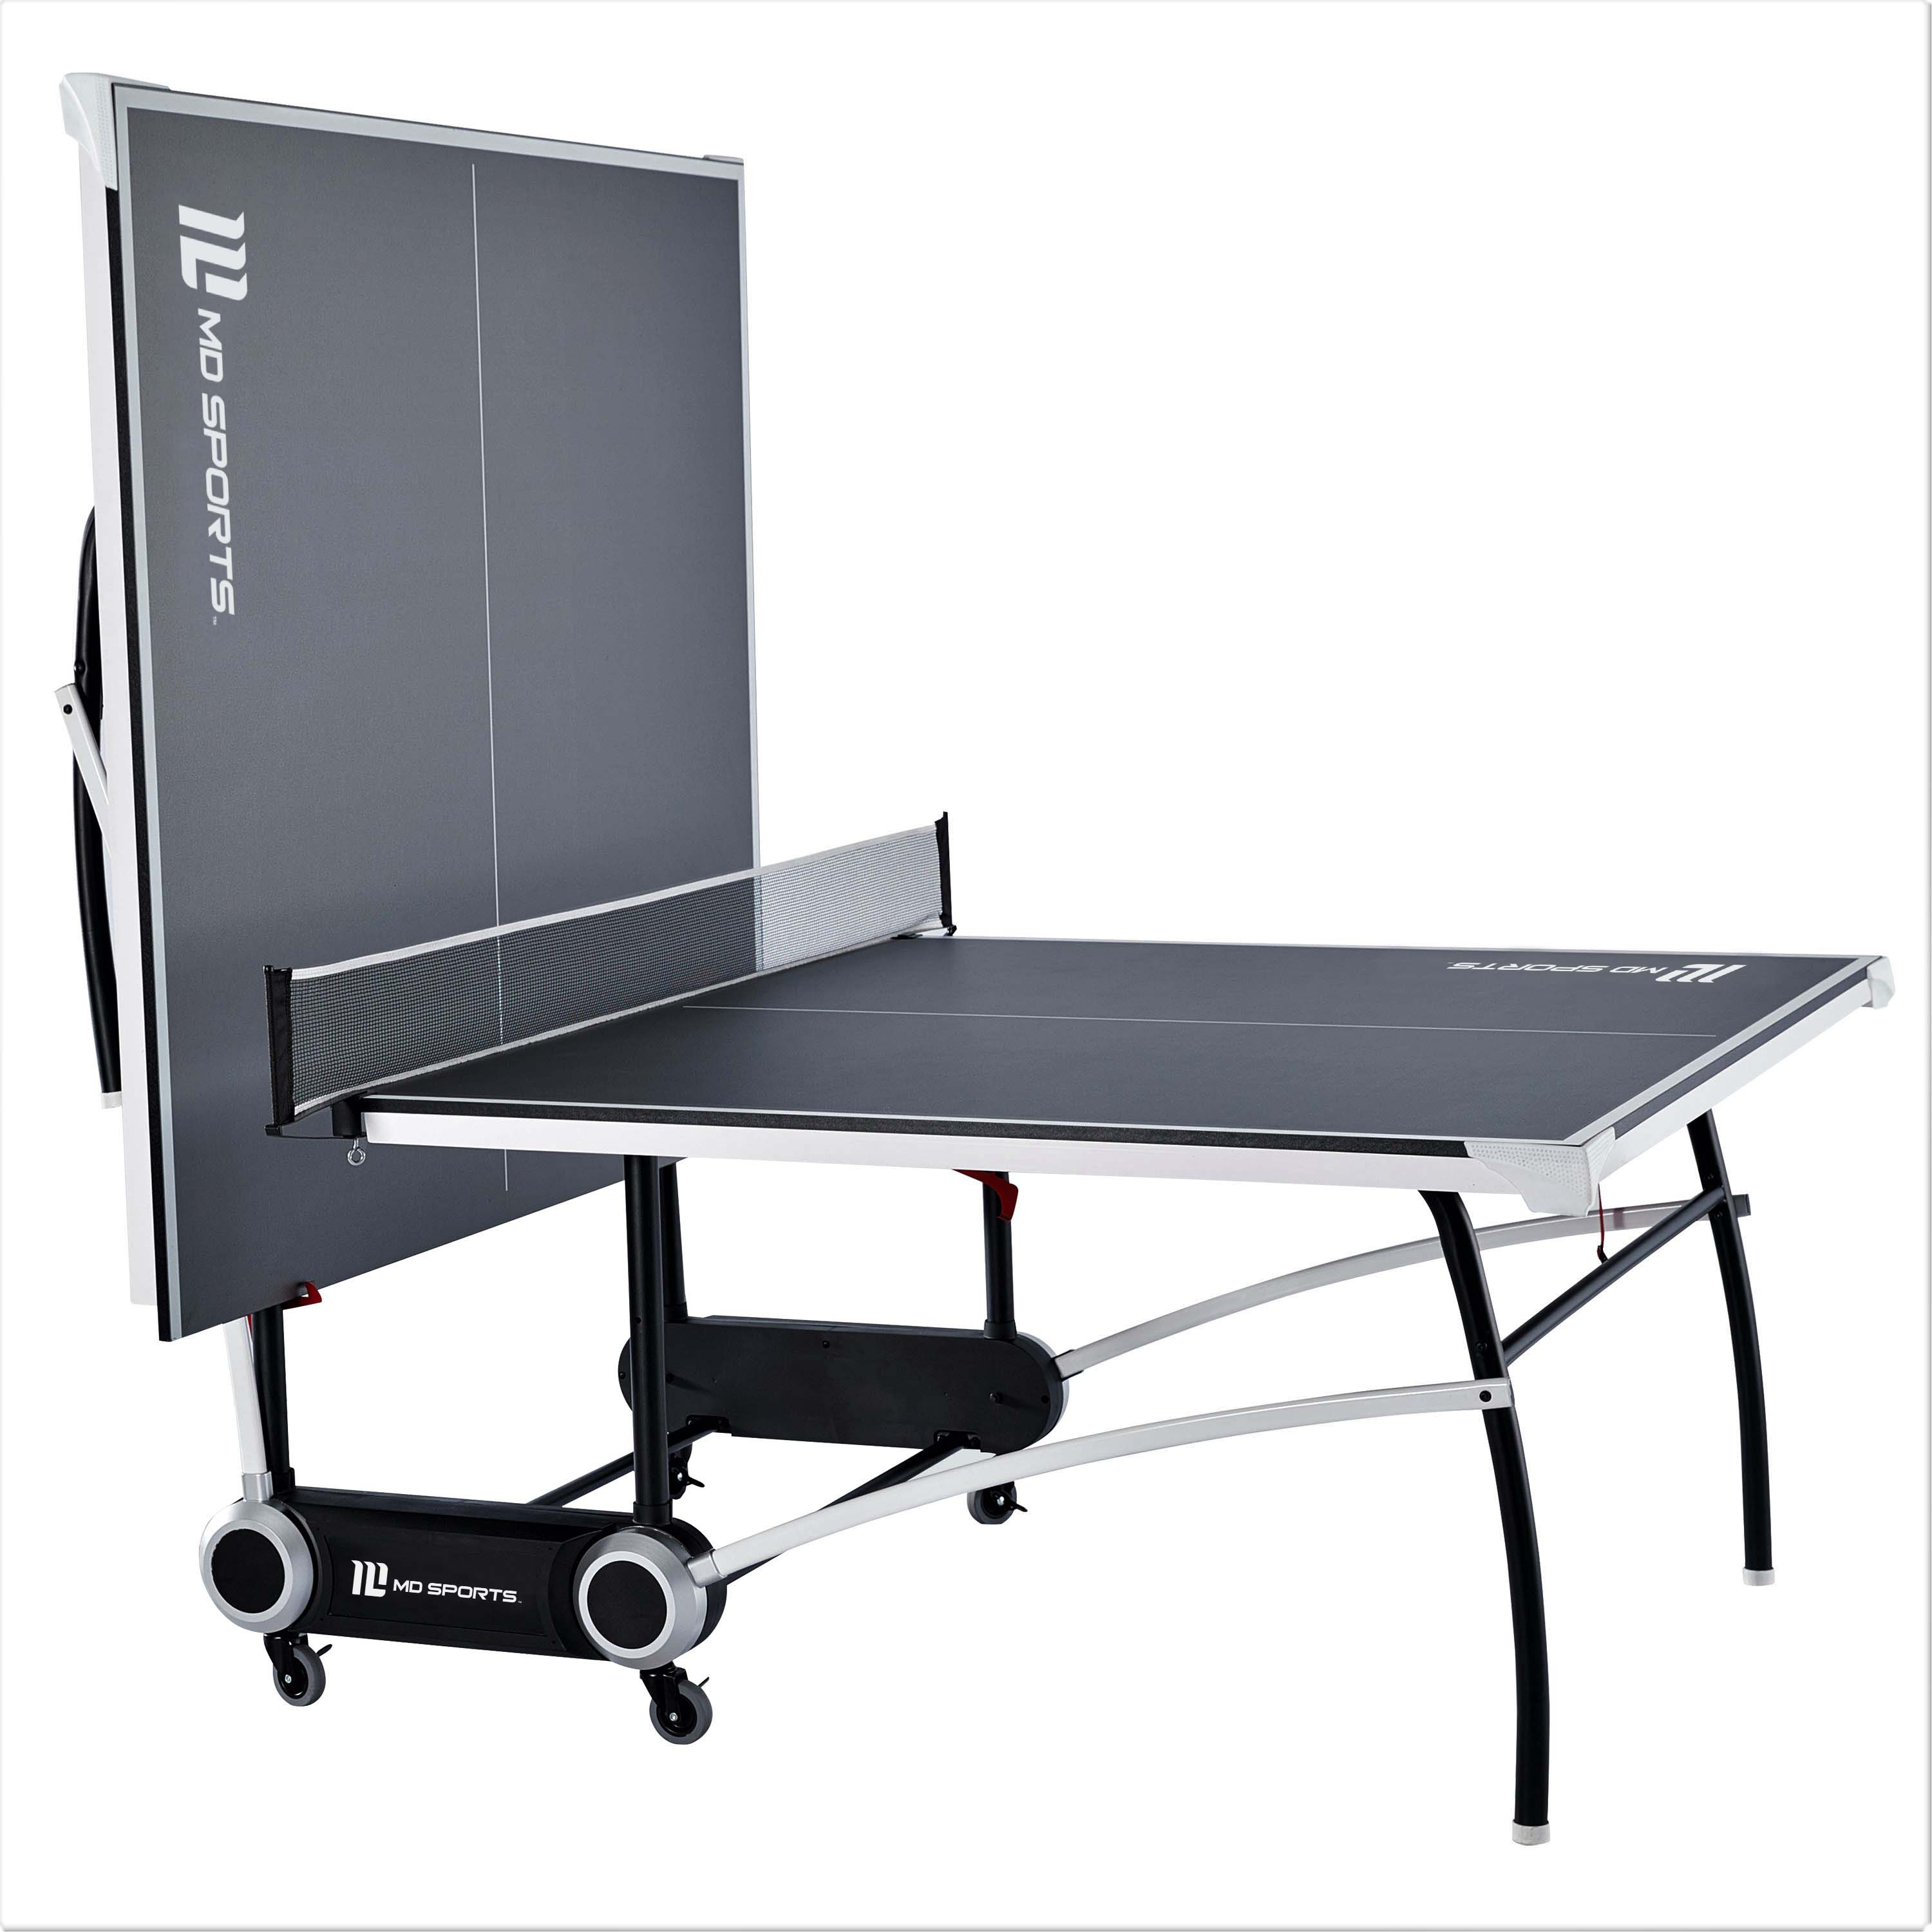 Charmant MD Sports 2 Piece Official Size Table Tennis Table, Includes Set Of Post  And Net, Sturdy Steel Leg Construction, Gray   Walmart.com